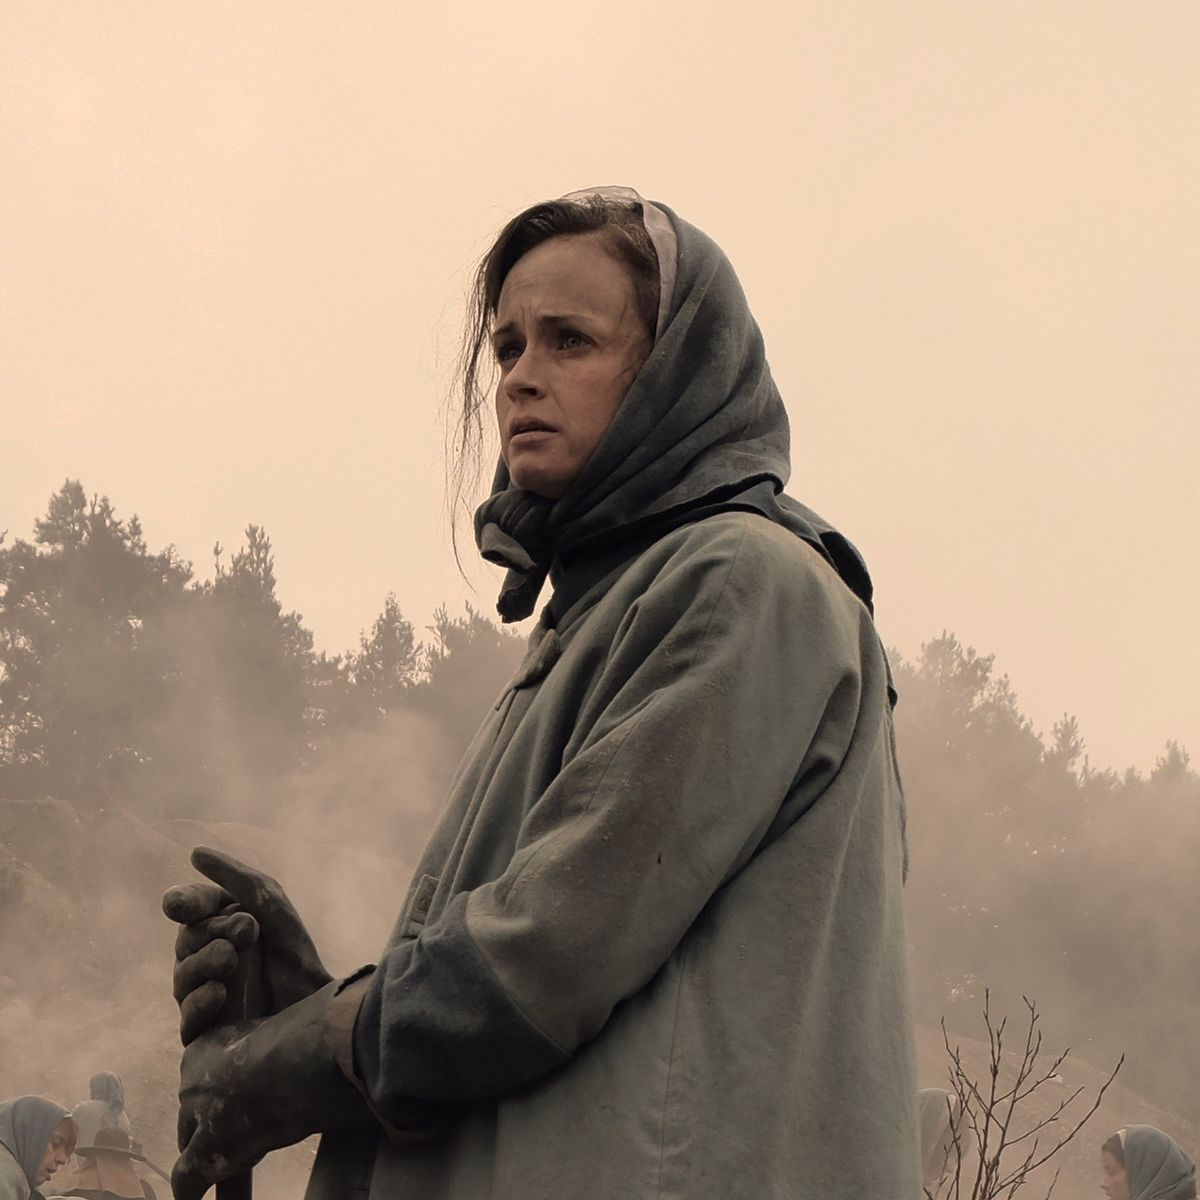 The Handmaid's Tale - Alexis Bledel as Emily in the colonies - cropped header